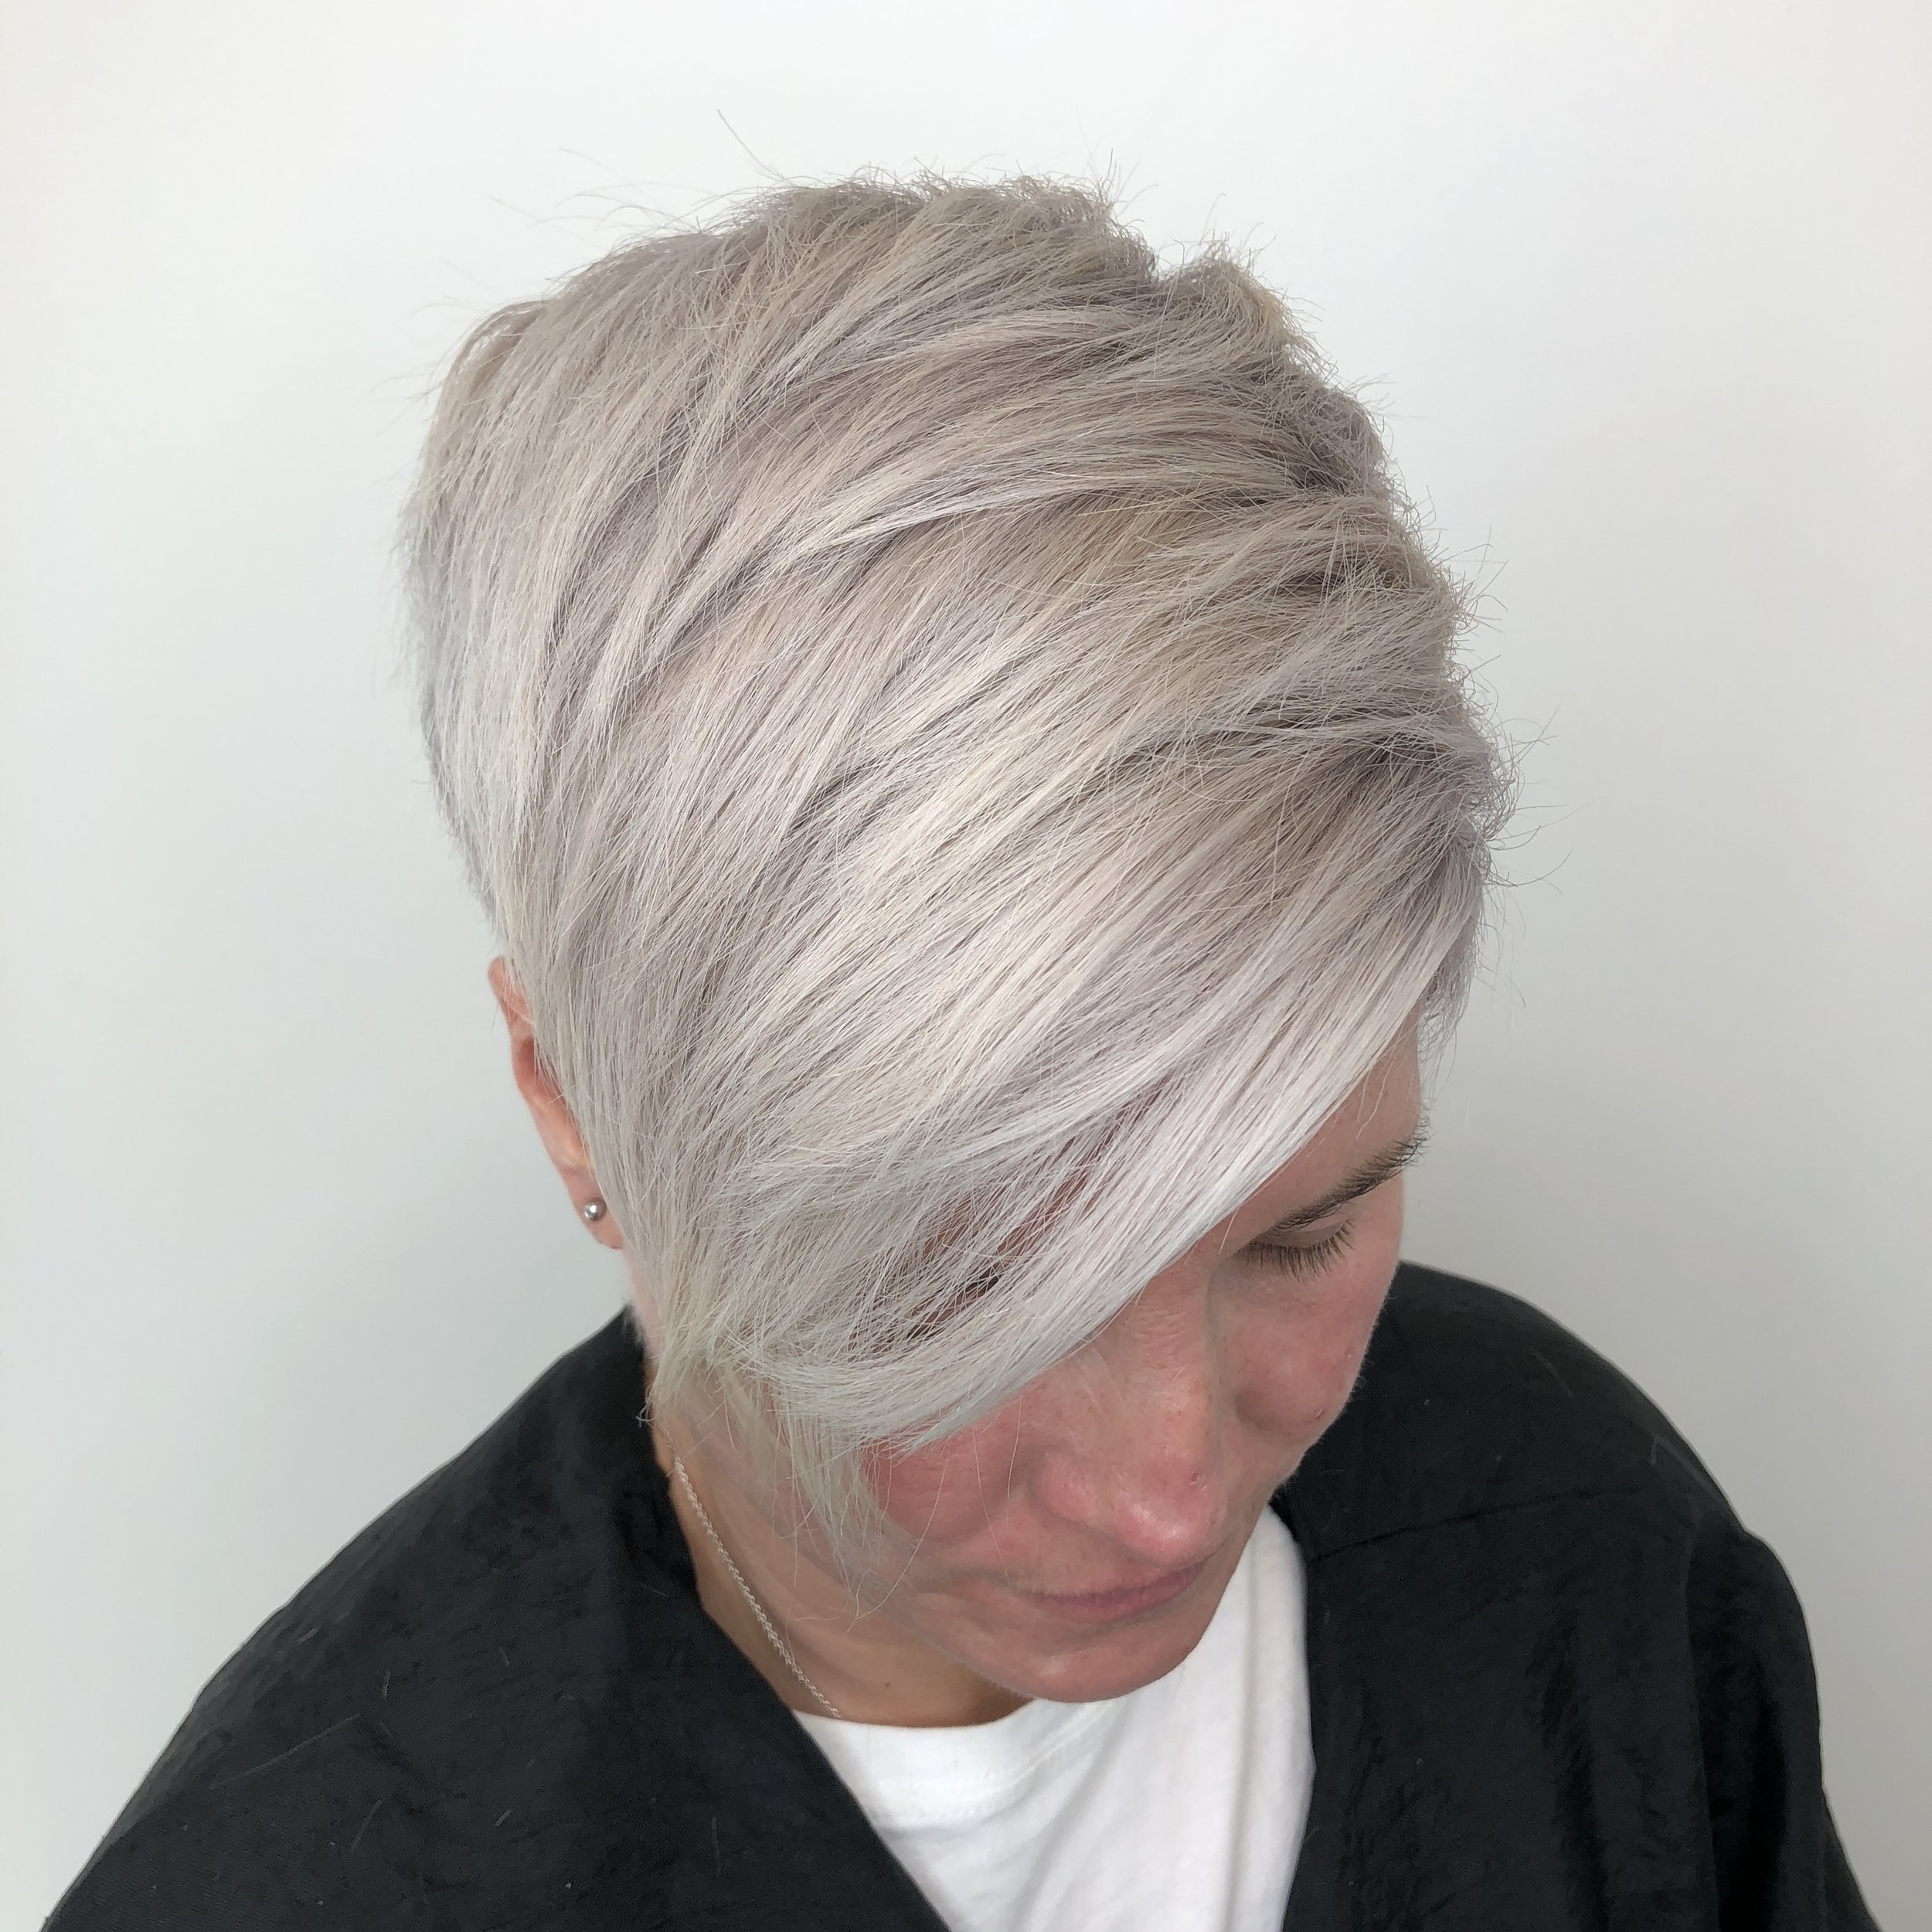 Pearly Blonde - Gone are the days of of flat one dimensional platinum blonde. Todays women are looking for a multifaceted color that show cases an effortless looking color. To get the pearly tone start with an almost white cool tone blonde and layer with a buttery blonde color to get this iridescent look.